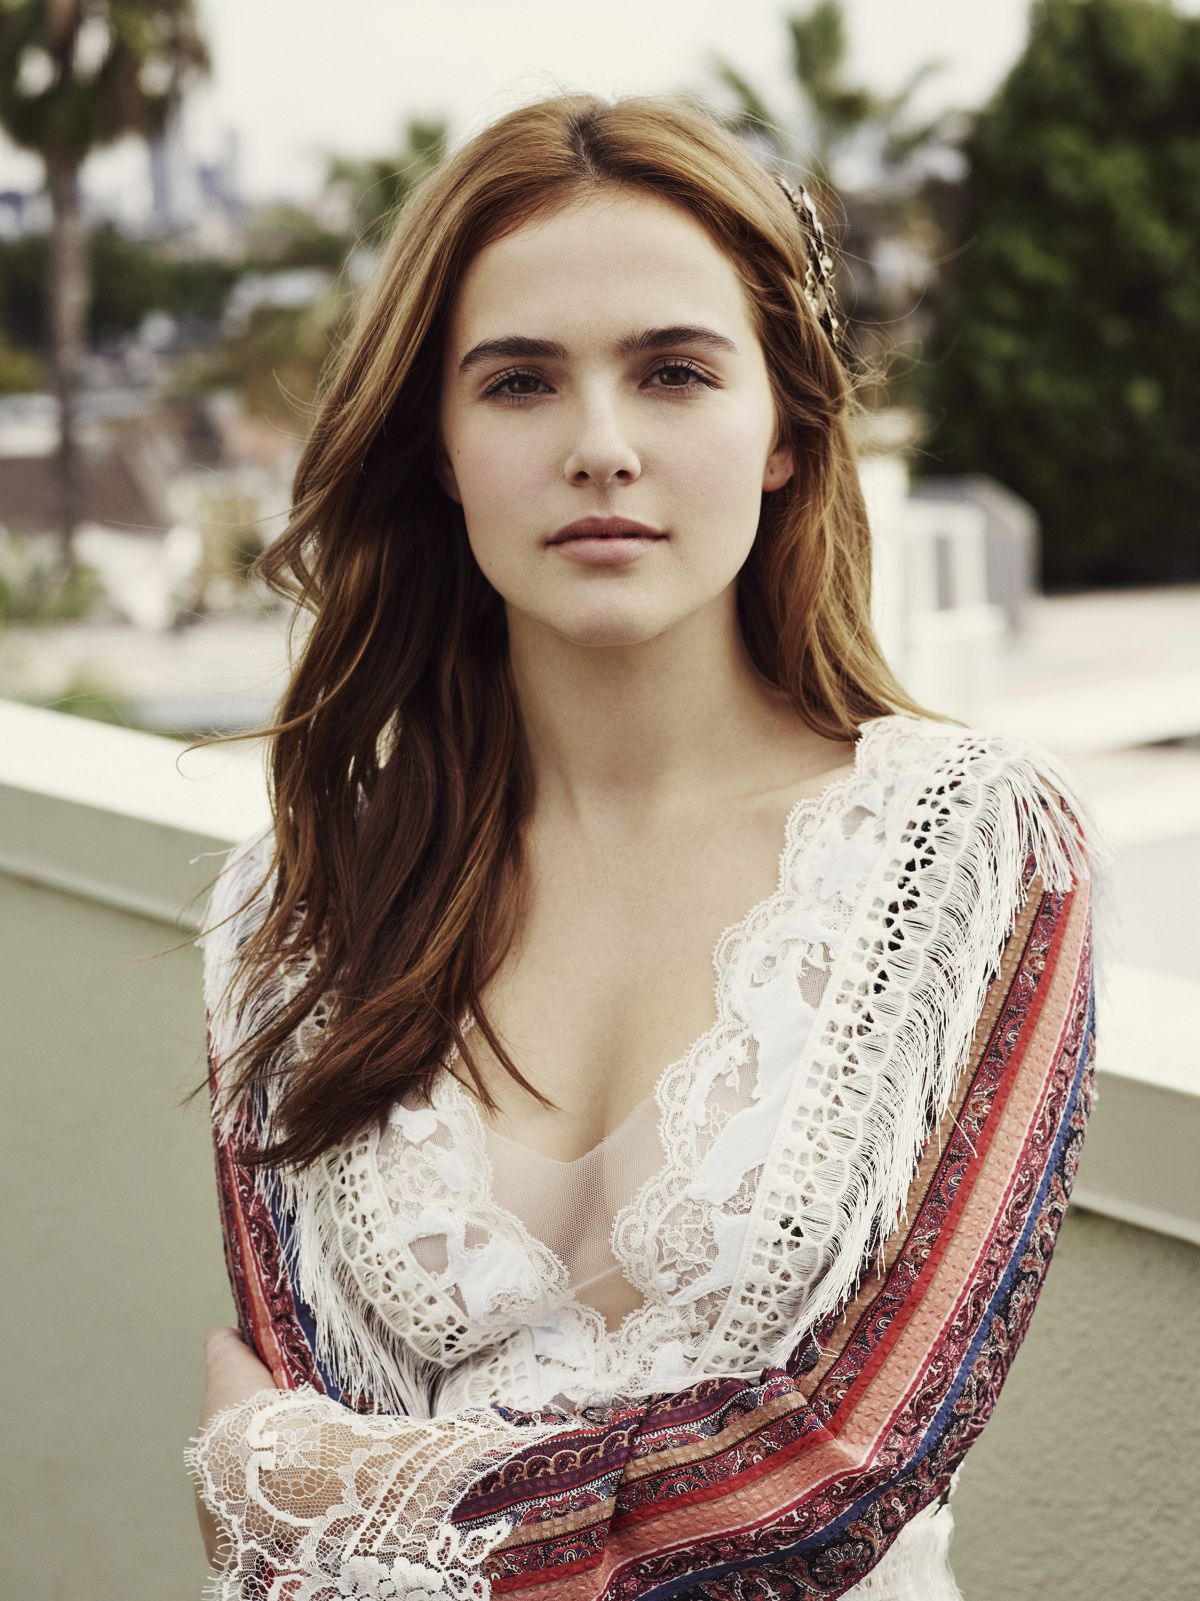 ZOEY DEUTCH in W Magazine, January 2016 Issue